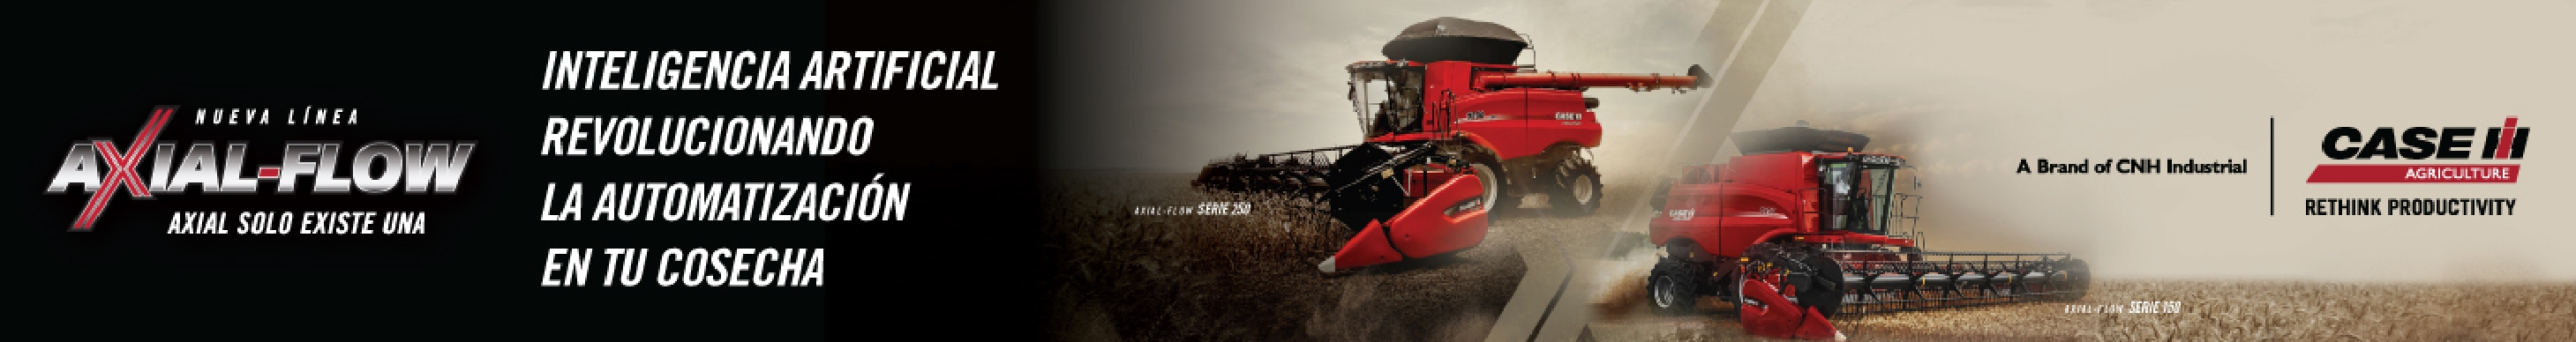 BANNERS ESTATICOS AXIAL FLOW_1400x185_page-0001